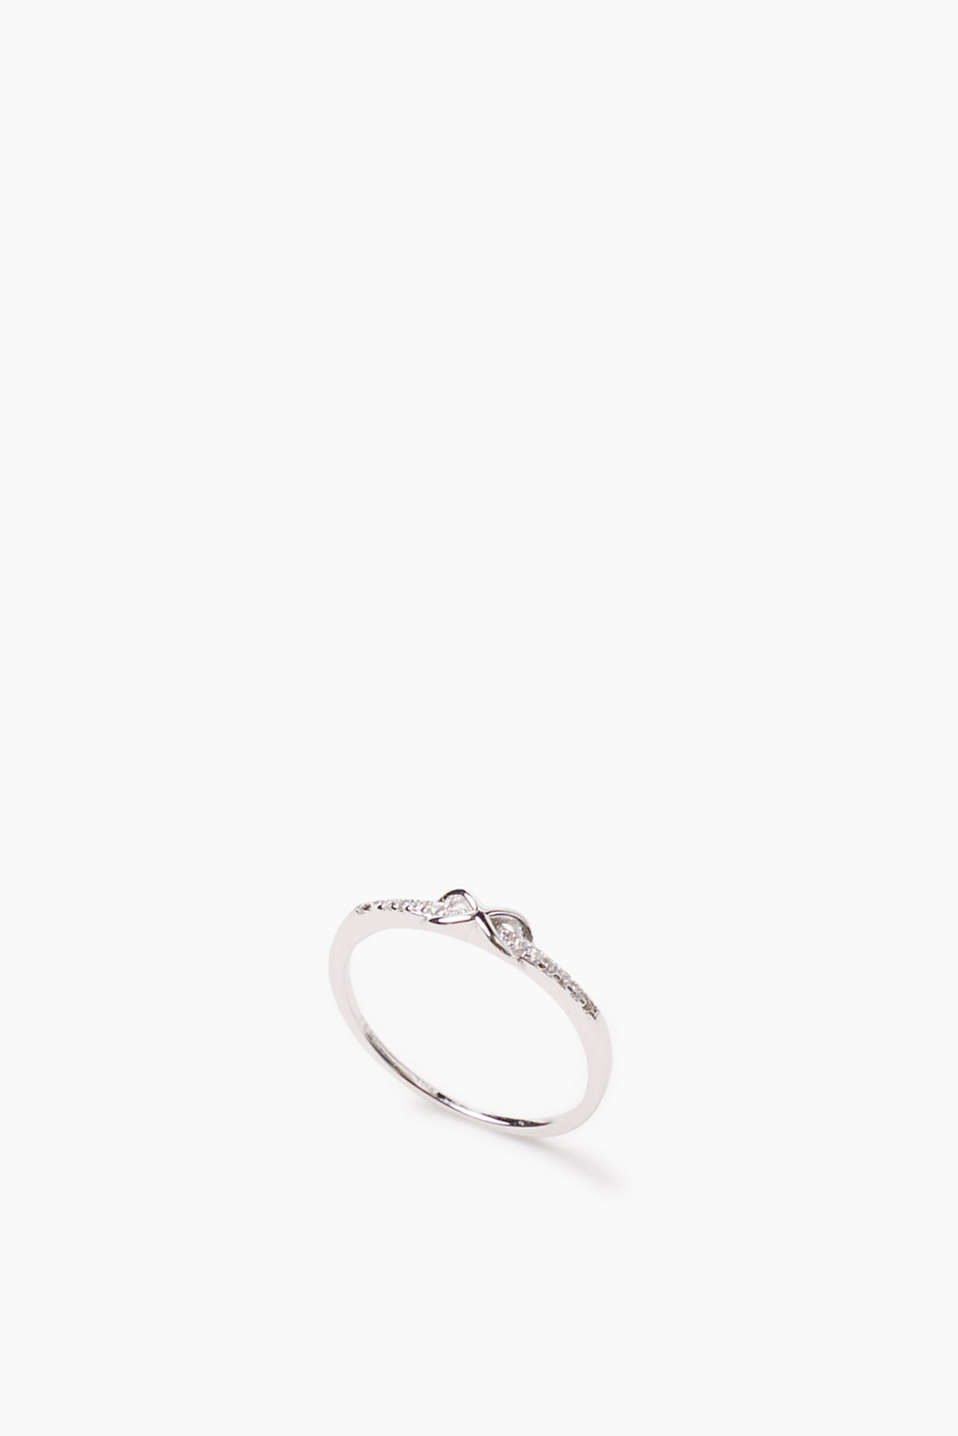 Esprit - Eternity Ring, Sterling Silber / Zirkonia